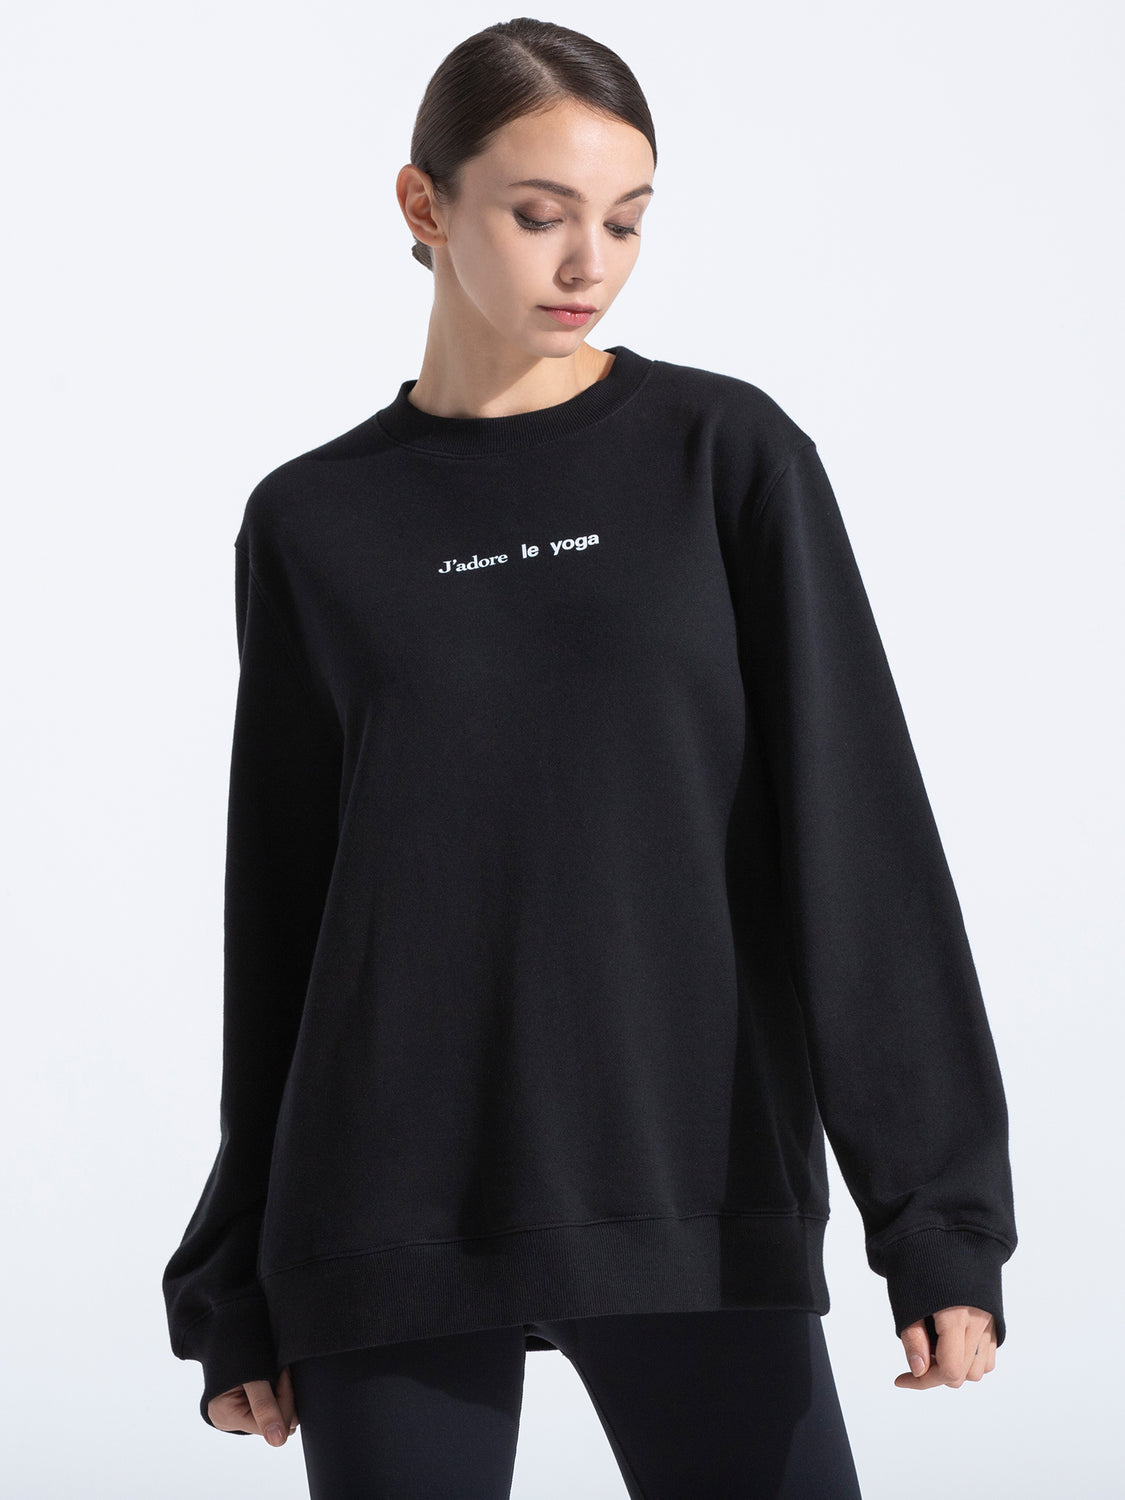 FRENCH YOGA SWEATSHIRT, BLACK